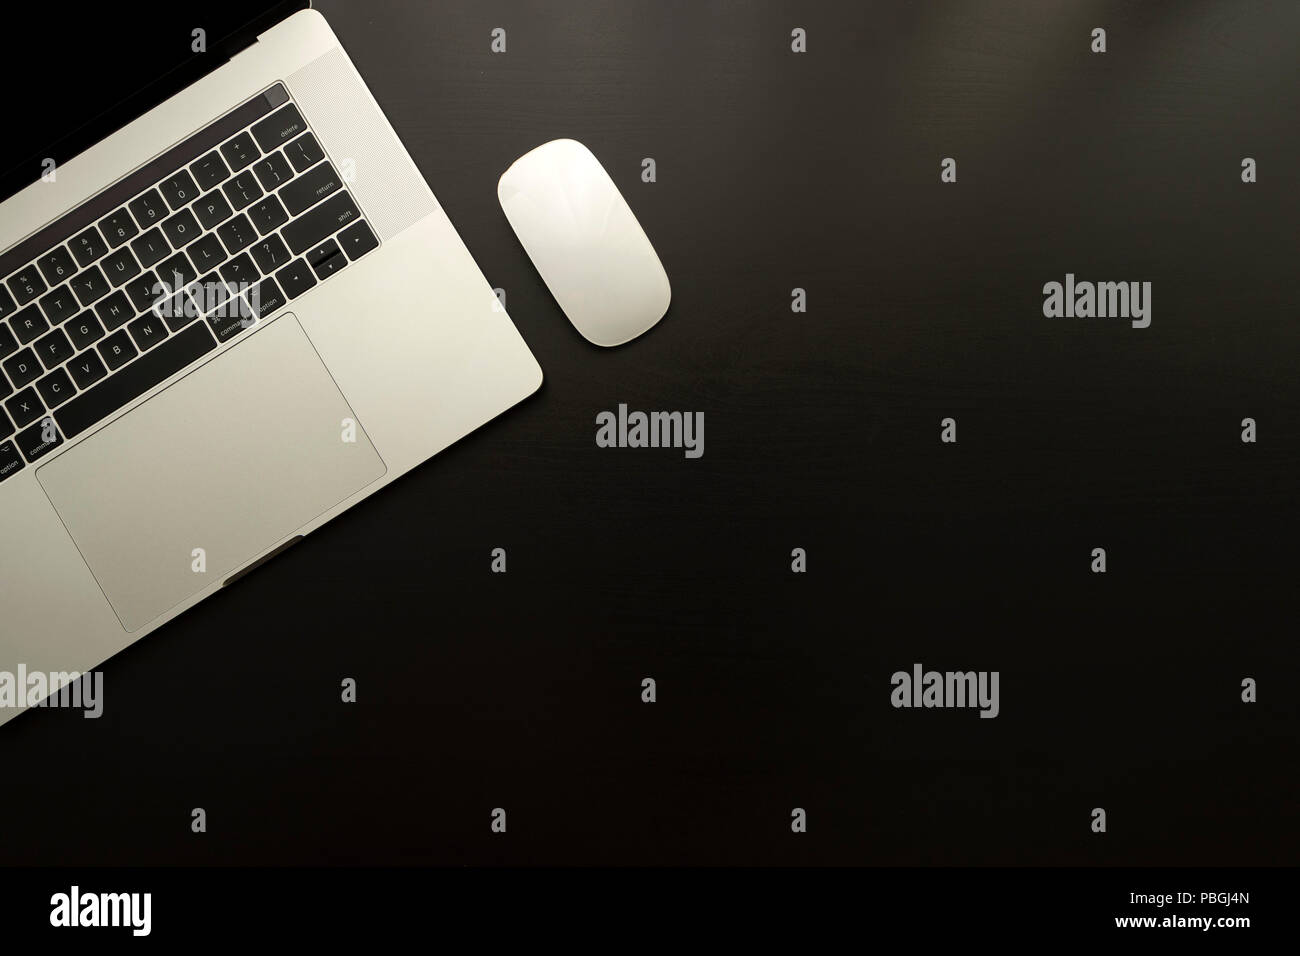 laptop and mouse over black wooden table monochromatic flat lay composition - Stock Image